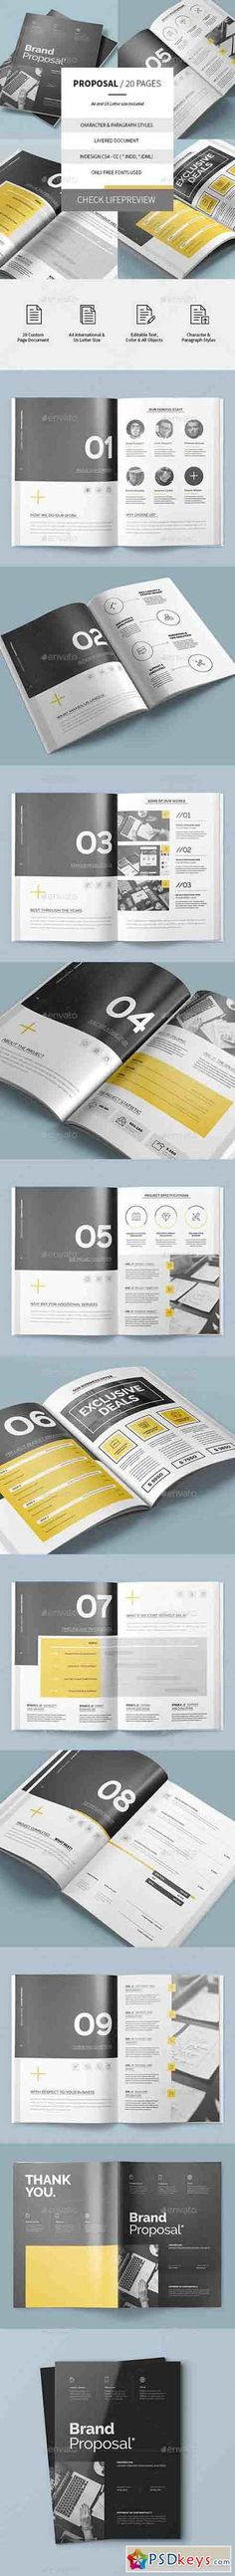 Web Design Proposal Template Proposal templates, Proposals and - design proposal